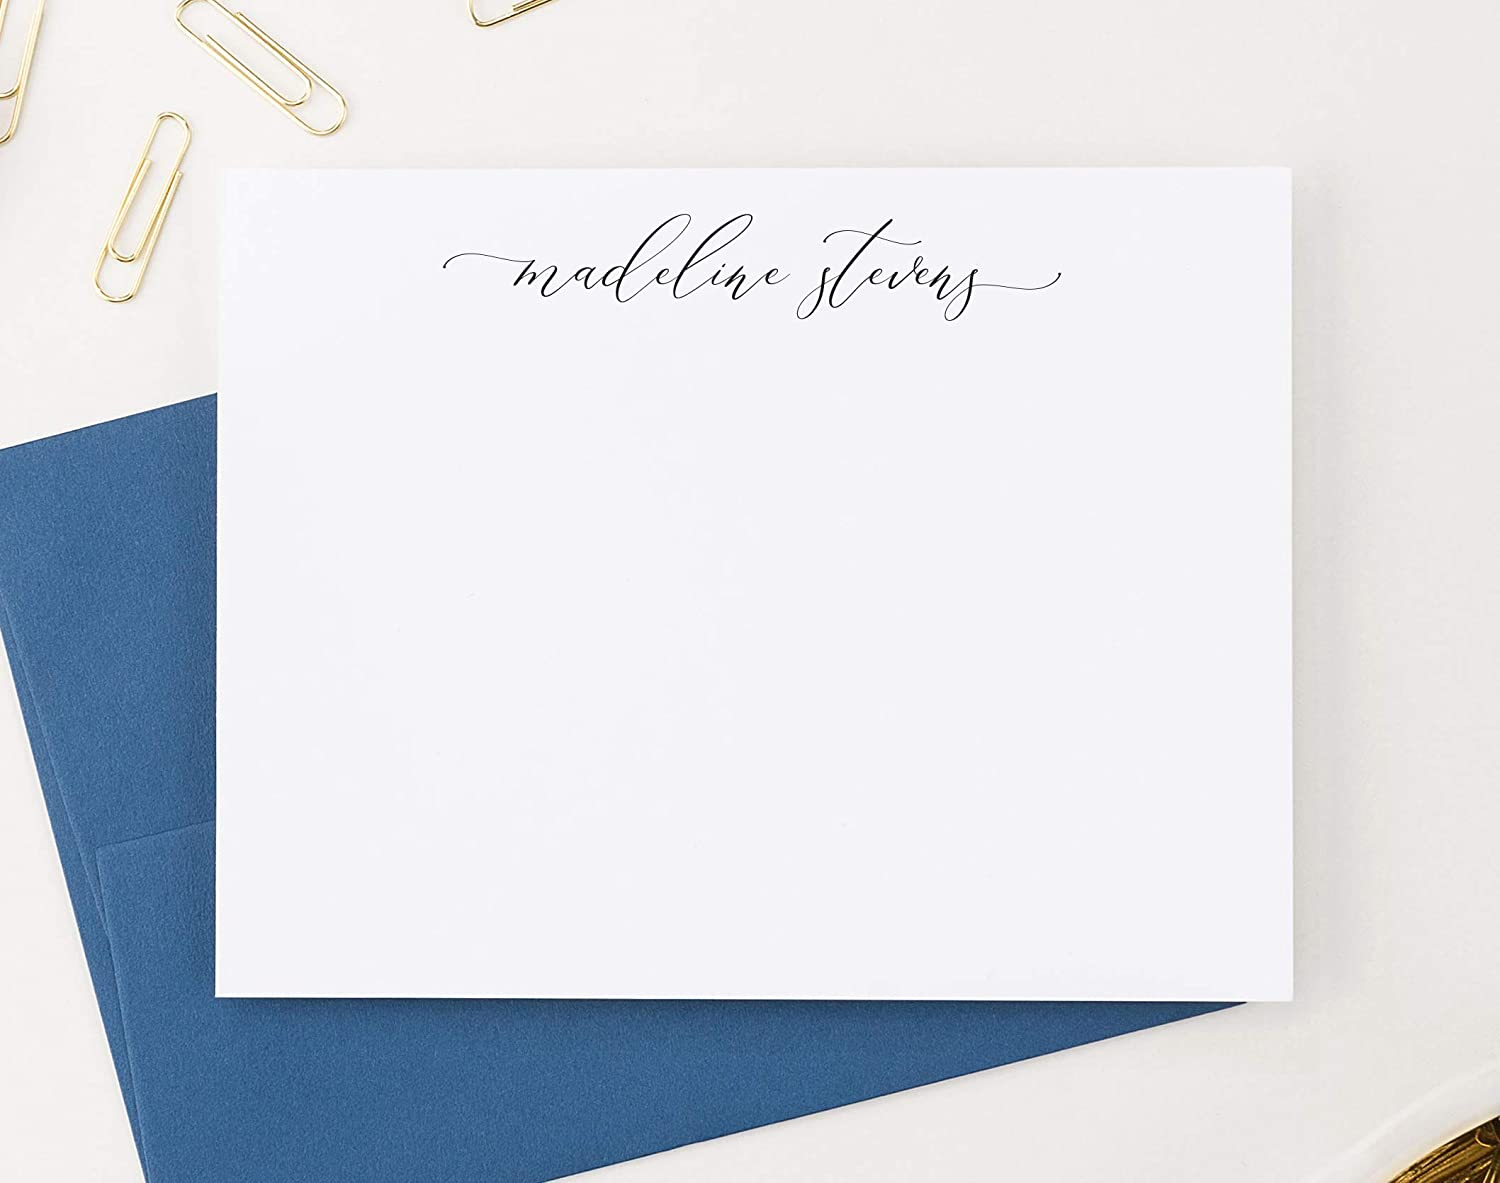 Personalized Stationery for Women Calligraphy Style Your Choice of Colors and Quantity Modern FLAT Note Cards with Envelopes